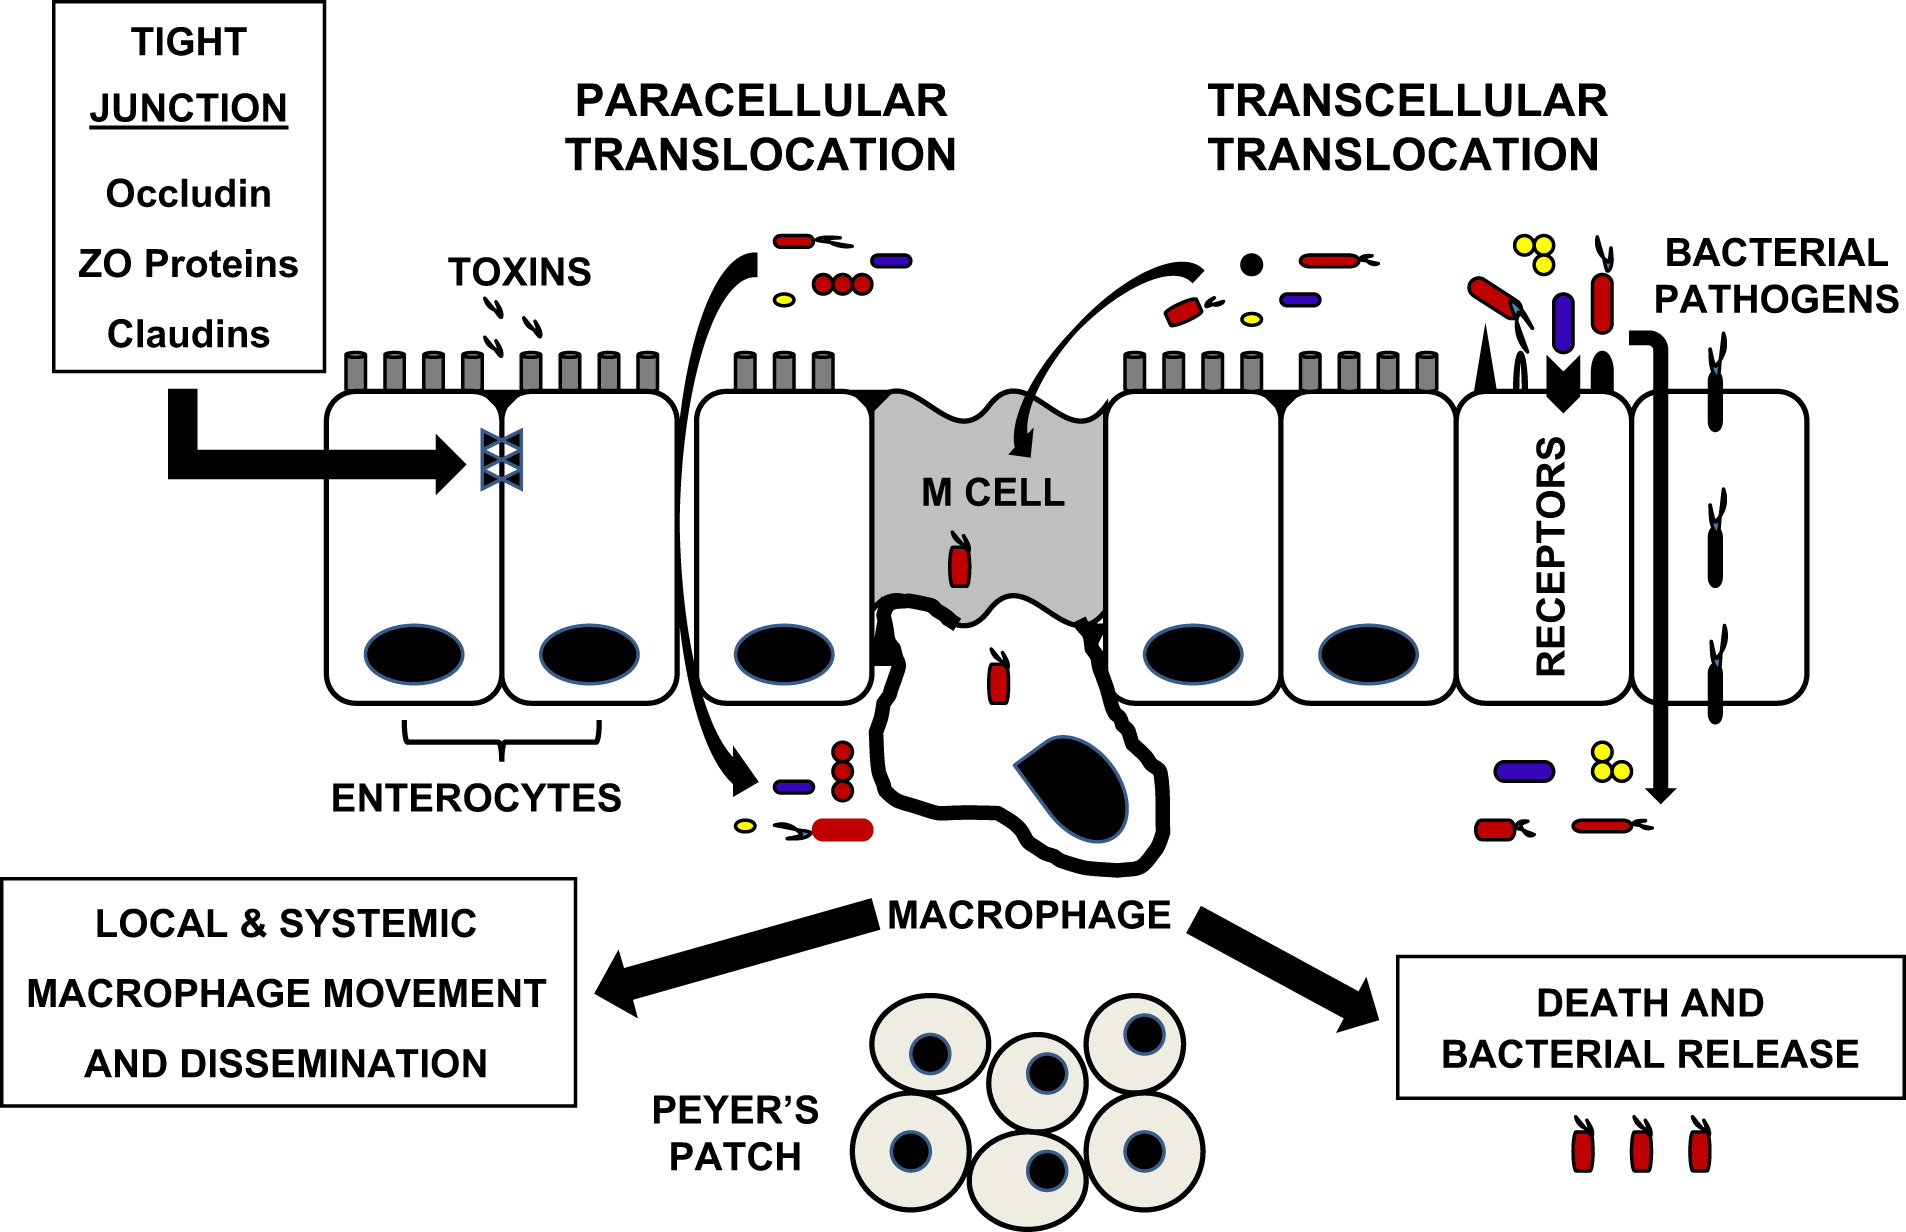 New Concepts of Microbial Translocation in the Neonatal